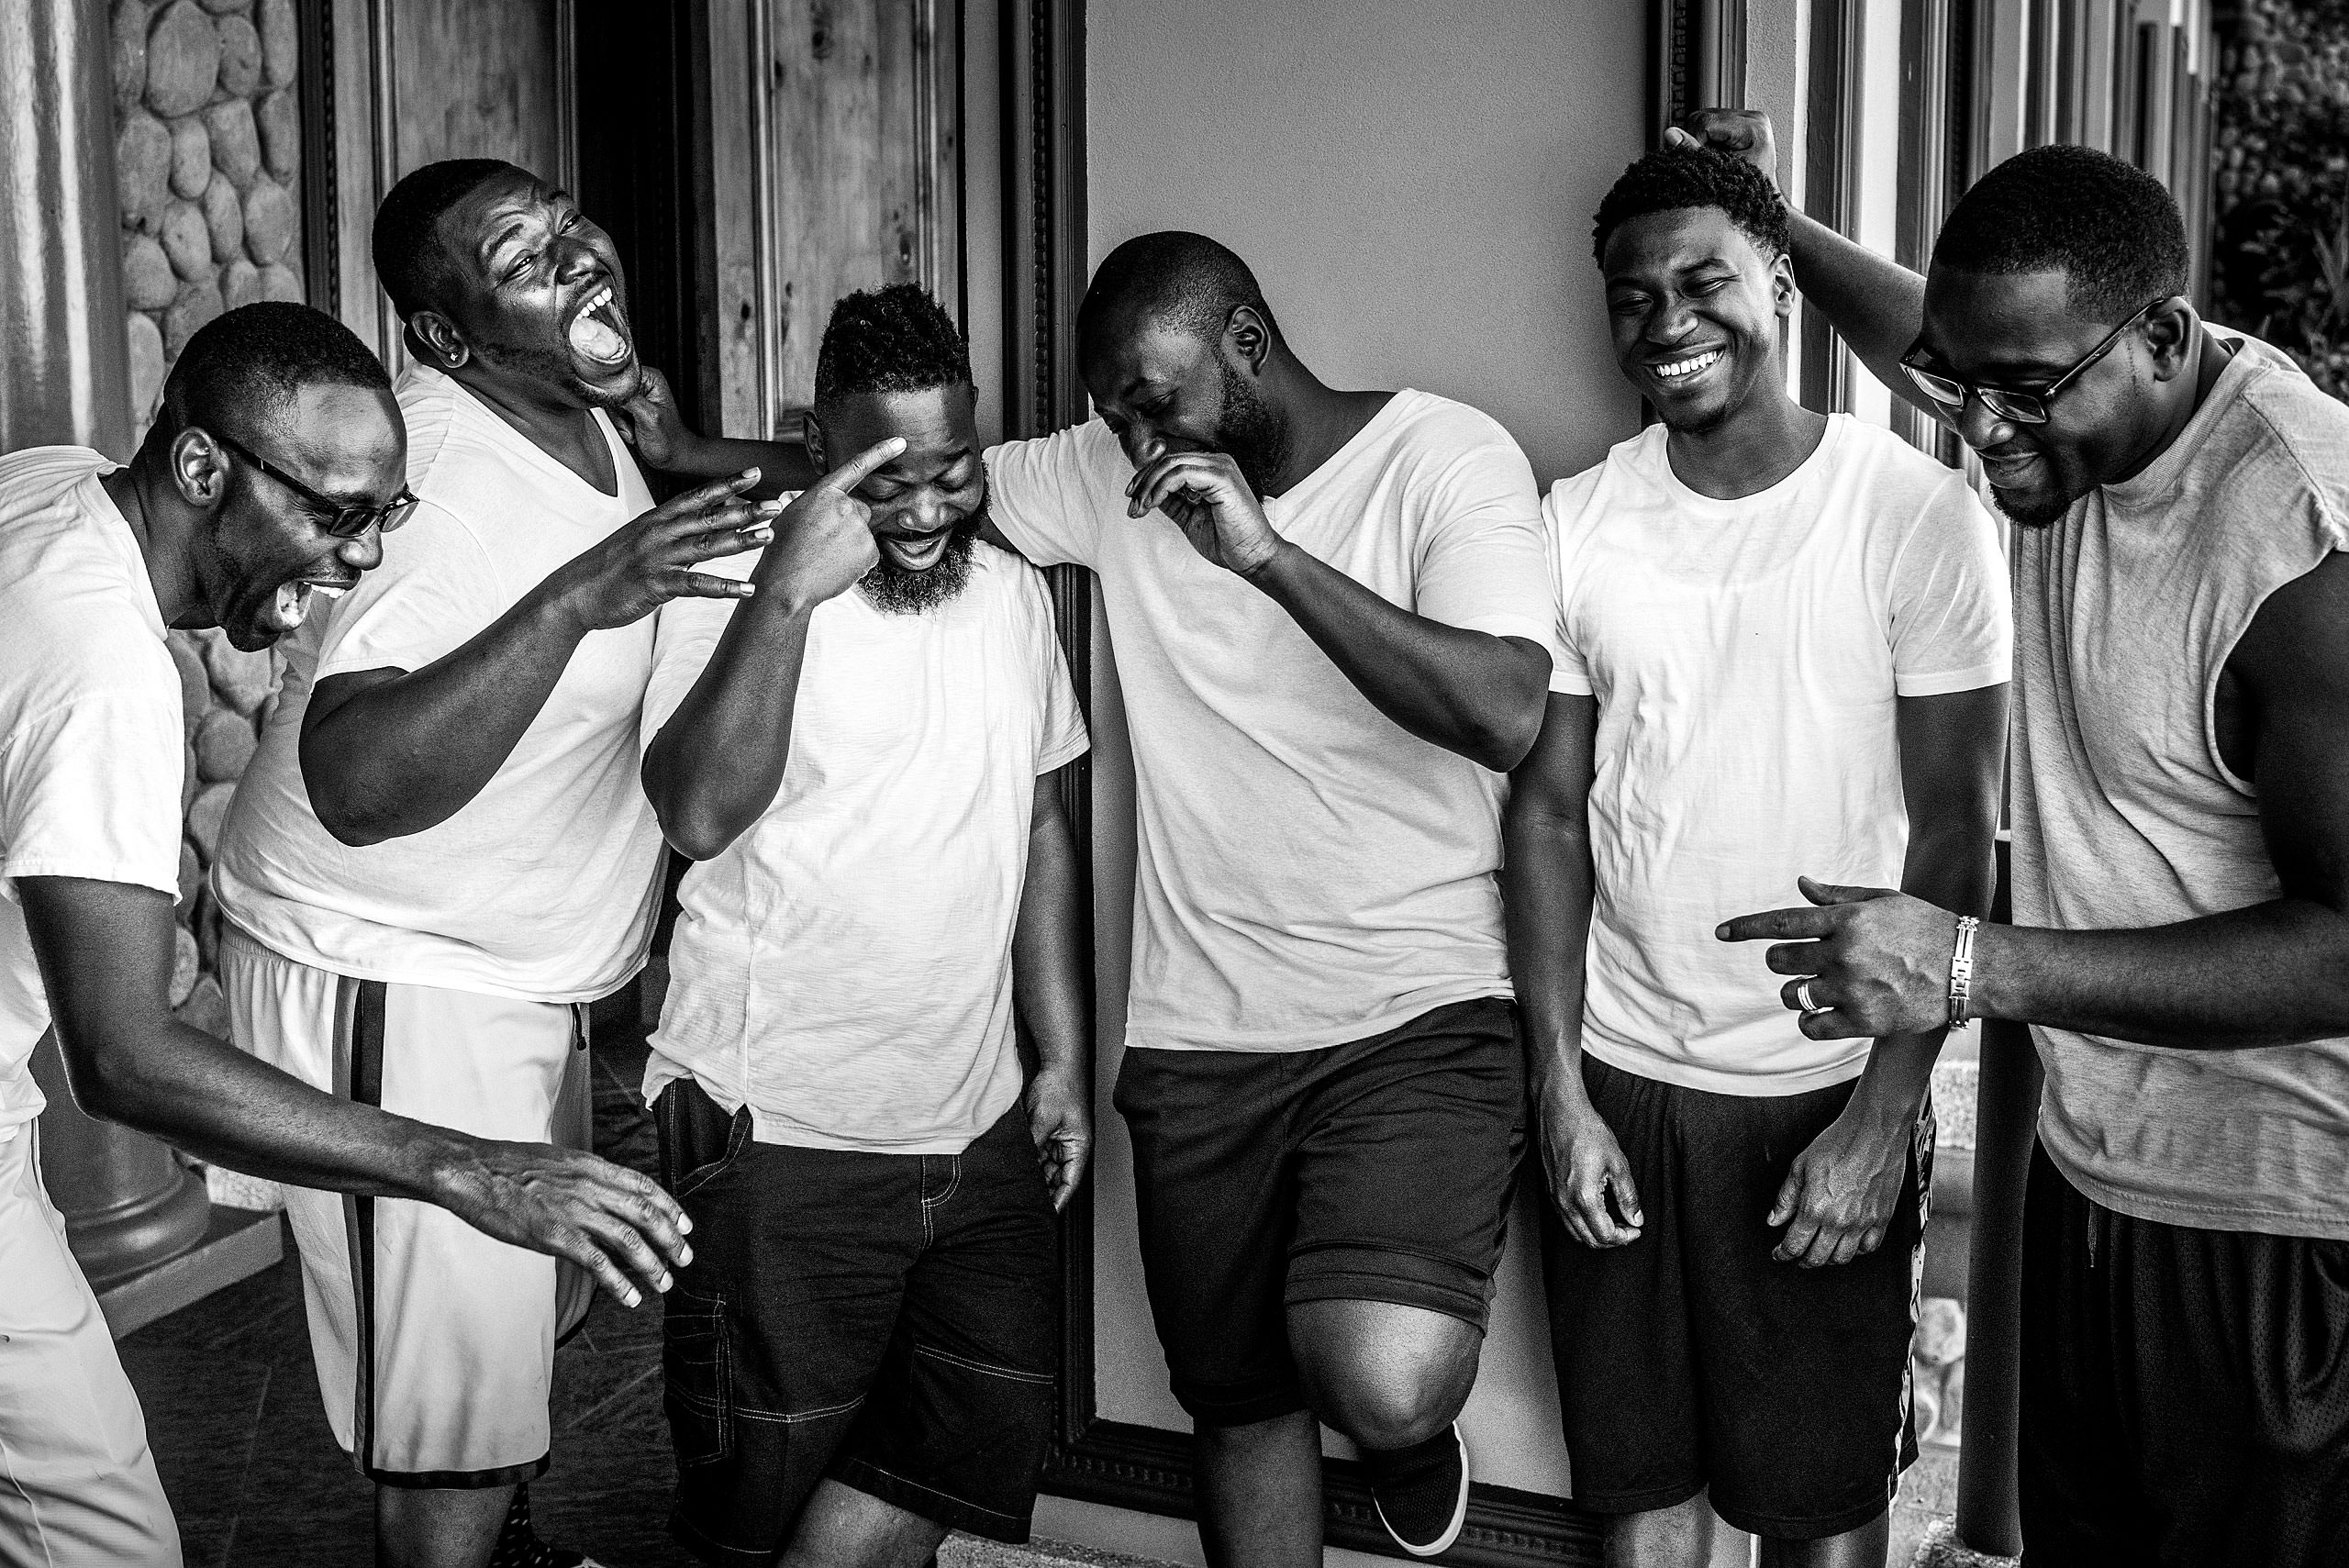 groomsmen joking around before a wedding day at Zephyr Palace Destination Wedding in Costa Rica by Sean LeBlanc